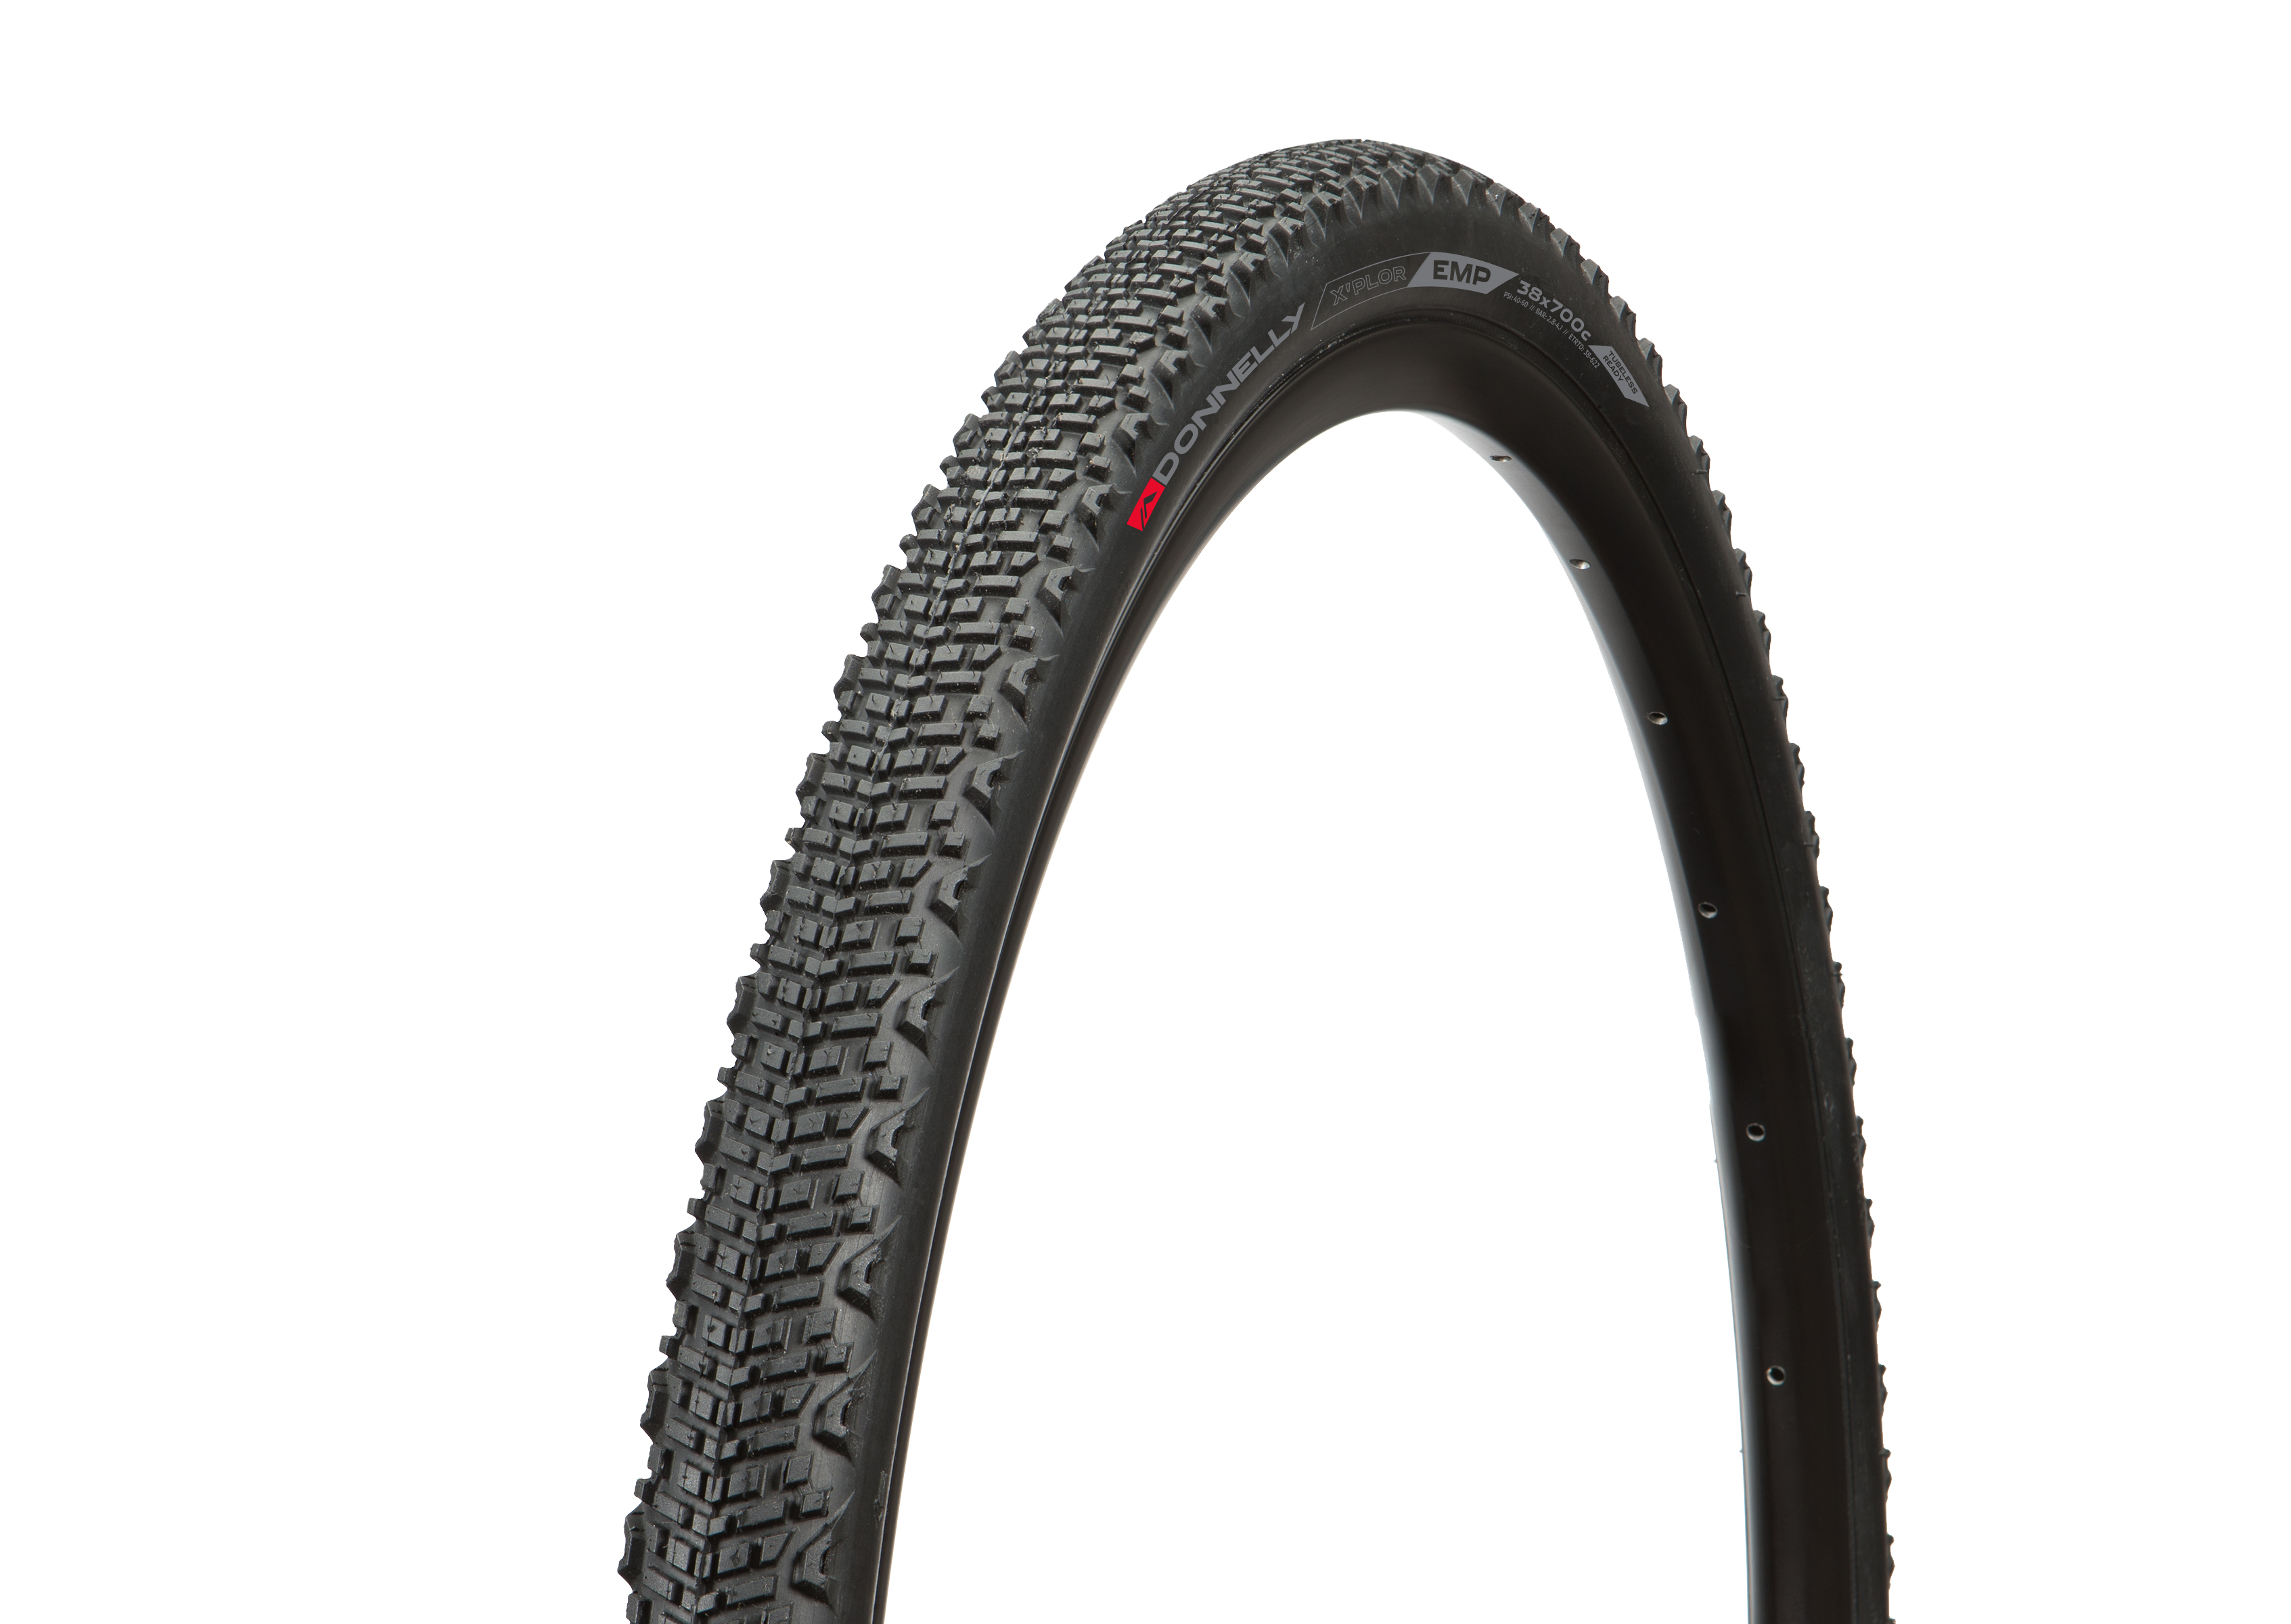 Donnelly EMP Mixed Terrain Adventure Gravel Bicycle Tires